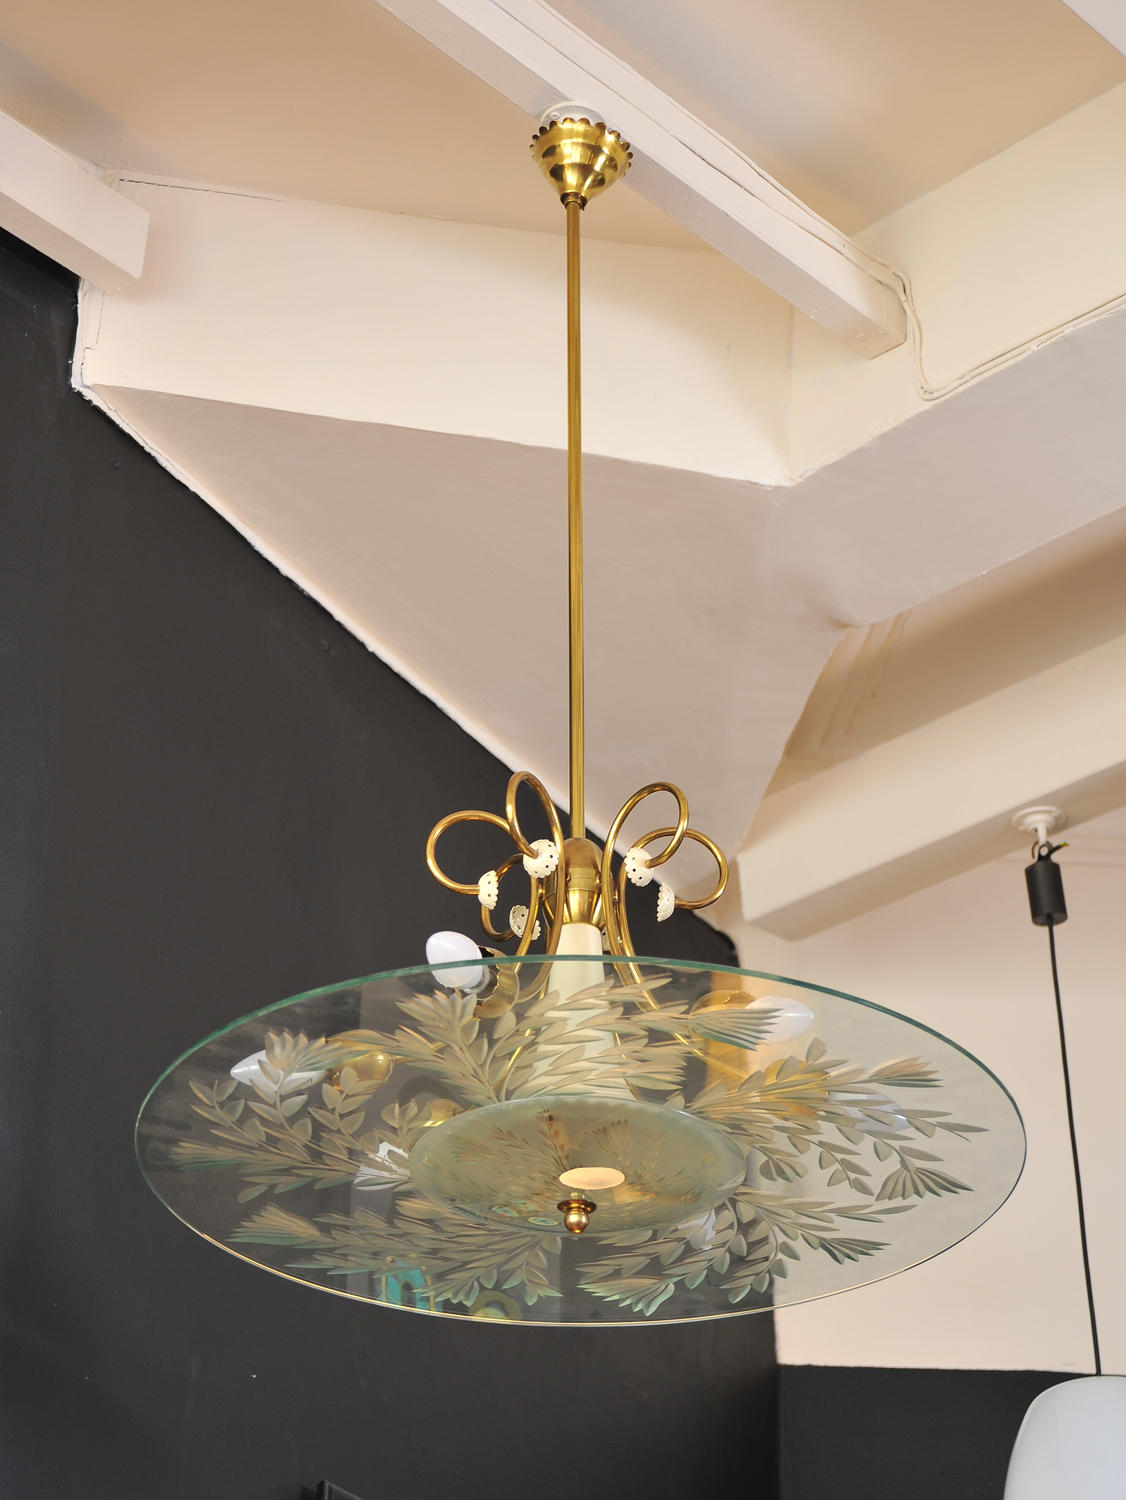 Fontana arte chandelier in chandeliers and pendants fontana arte chandelier picture 1 aloadofball Choice Image